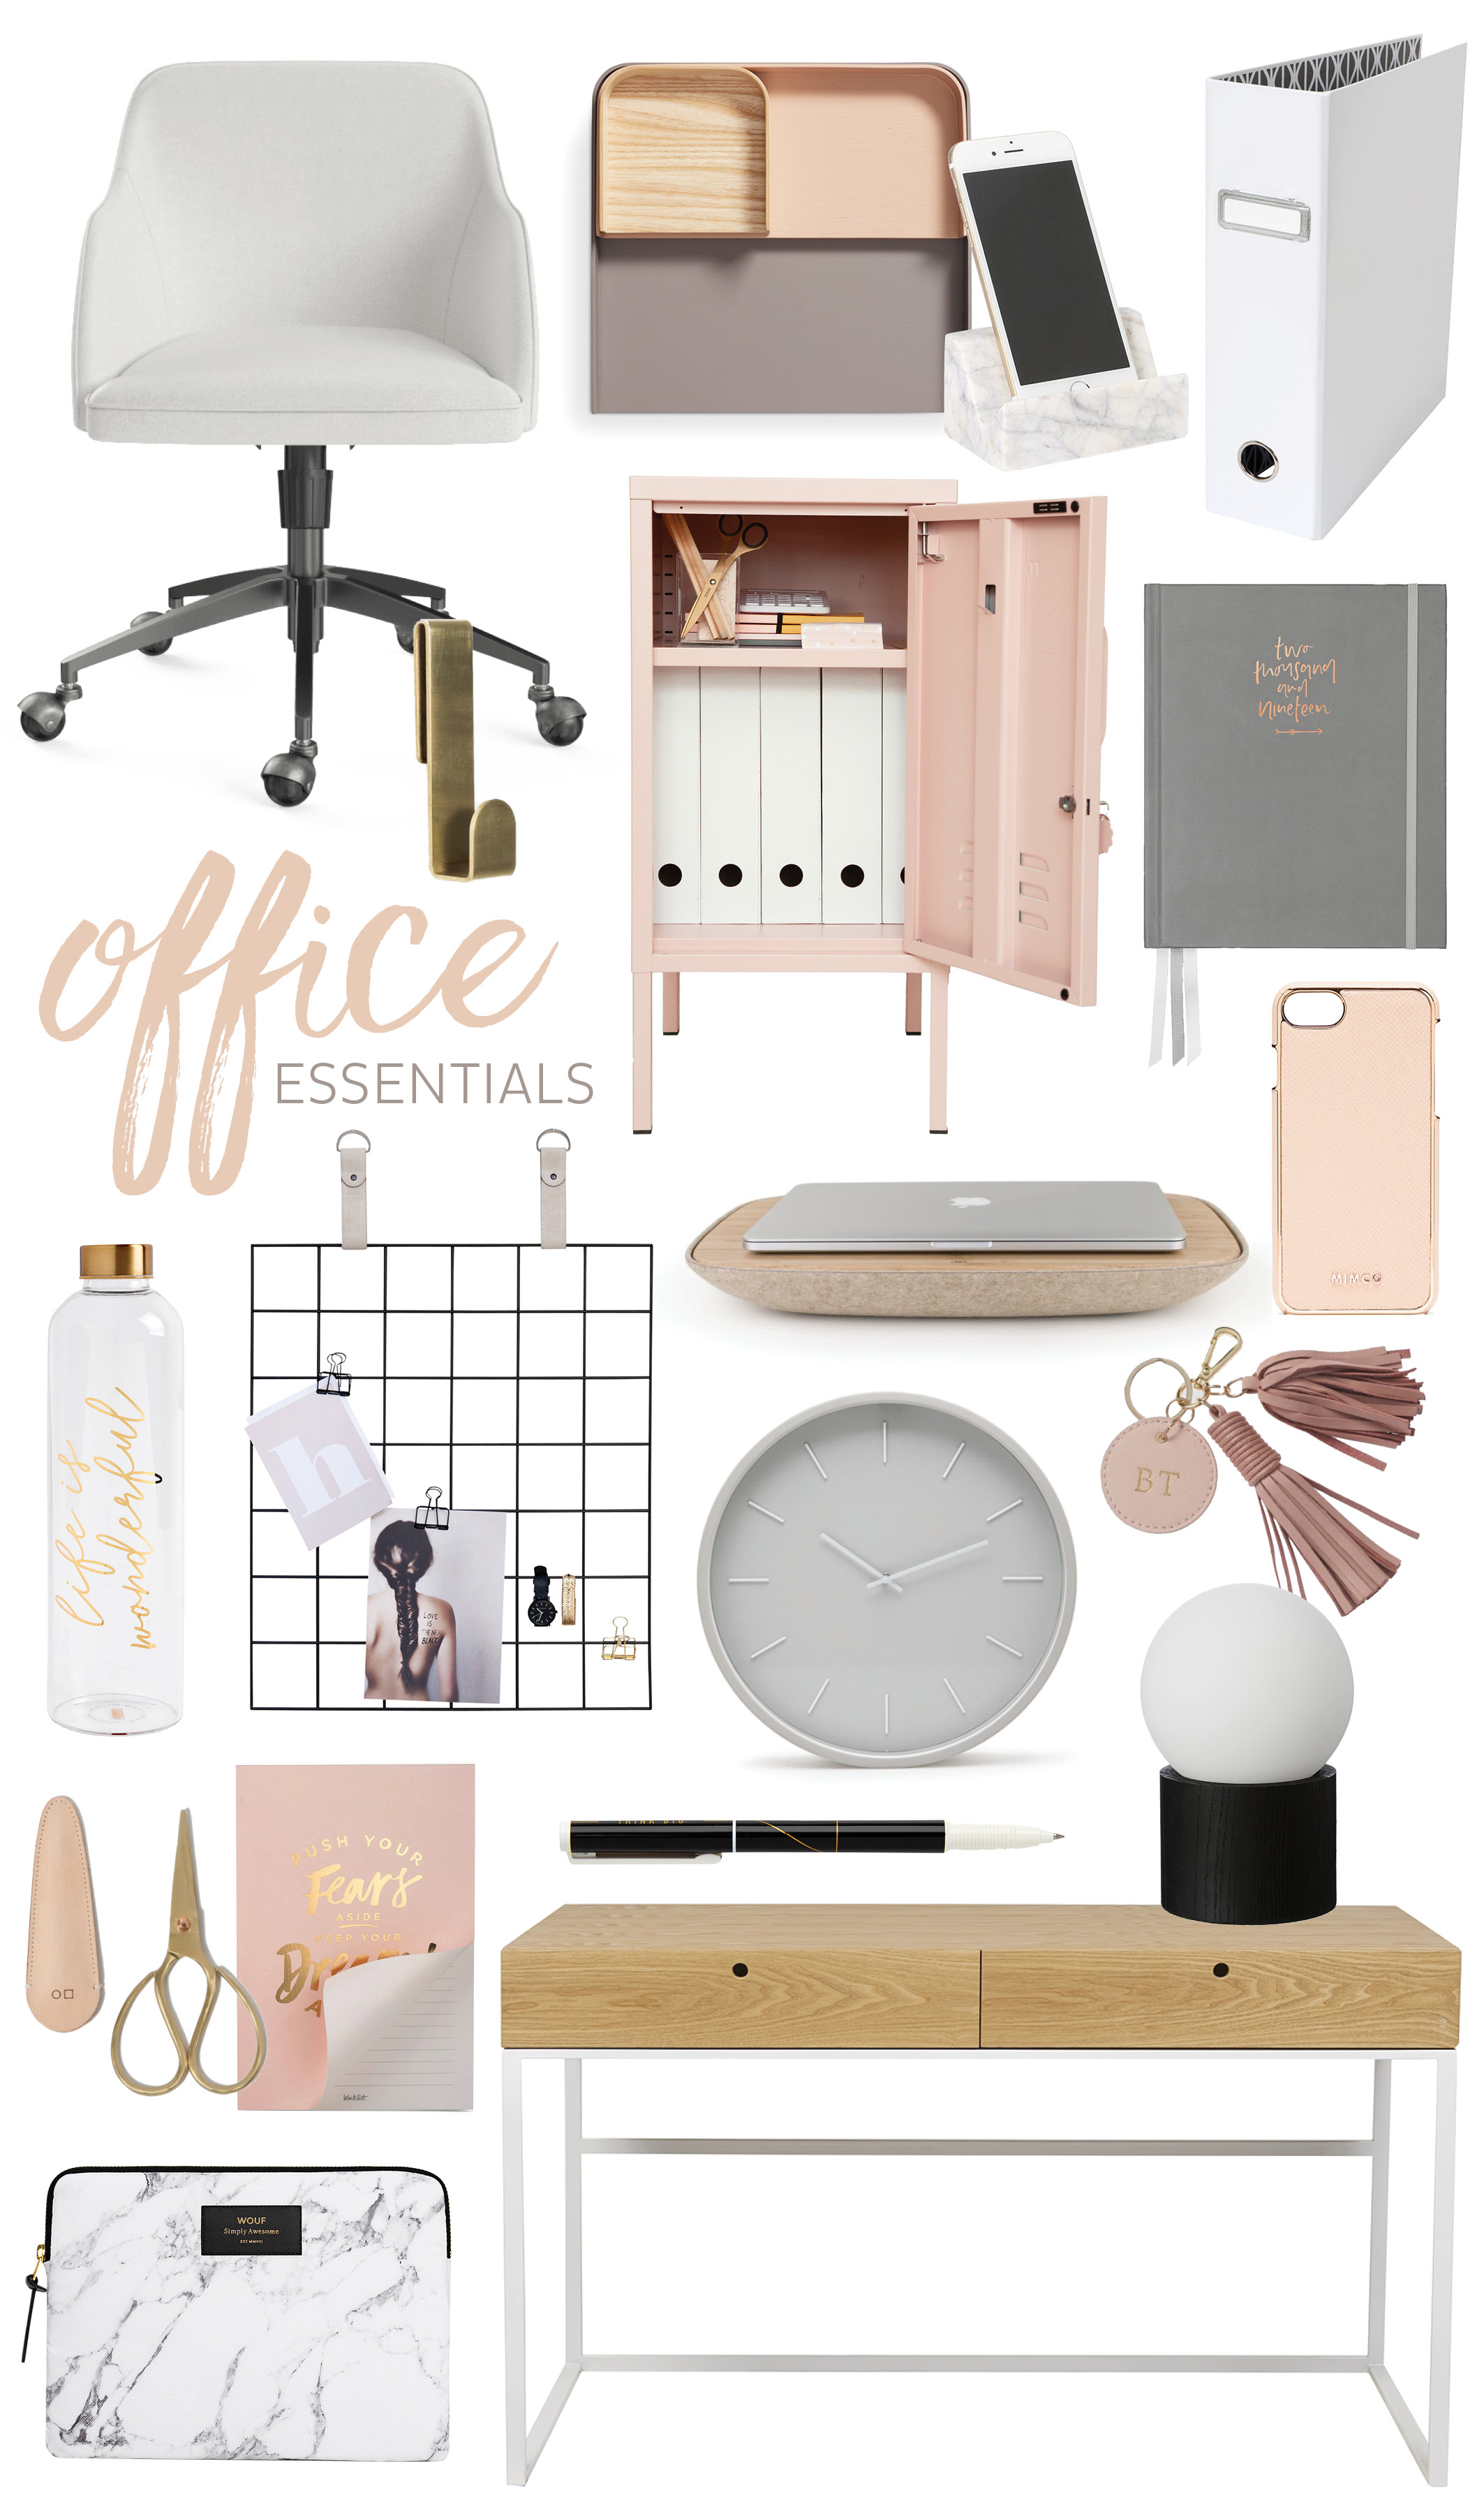 adore_home_blog_office_essentials_blush_pink_grey_chic_gold_brass_marble_neutral_workspace_products_moodboard.jpg